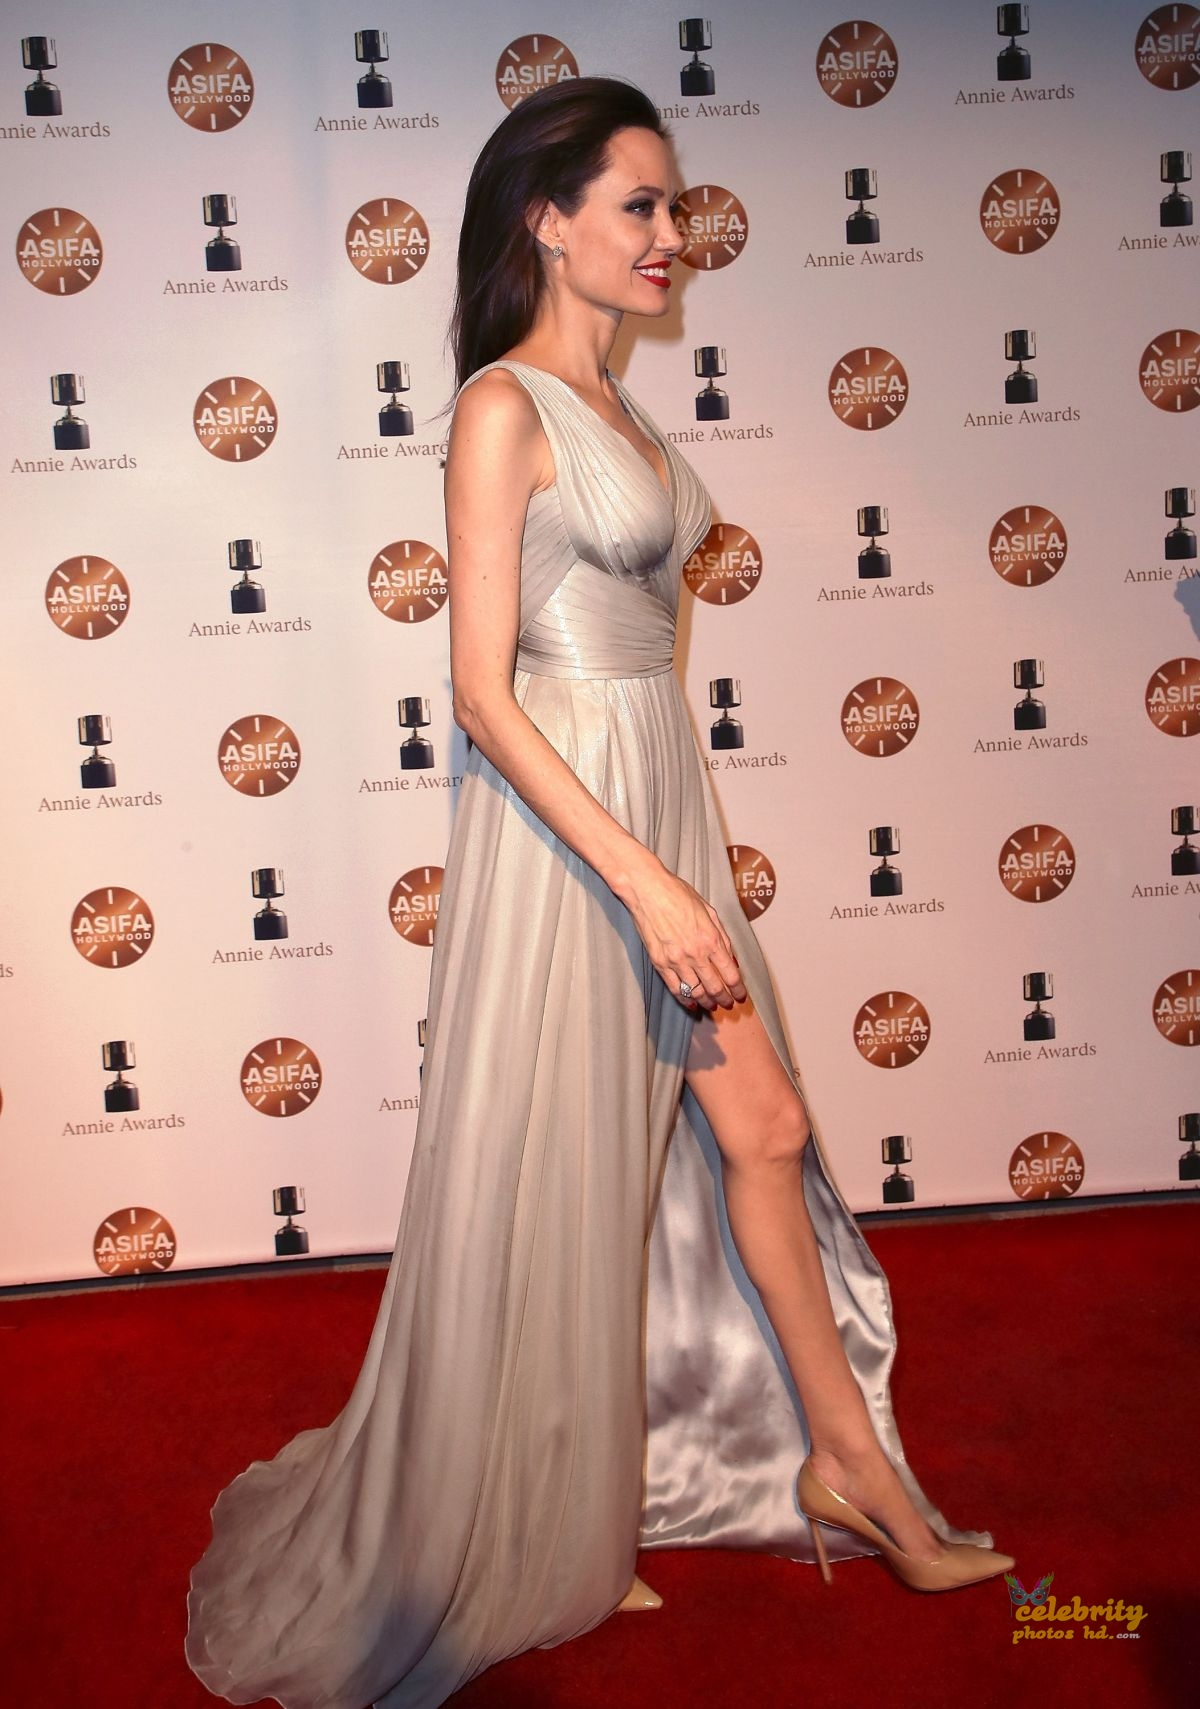 ANGELINA JOLIE at 45th Annual Annie Awards in Los Angeles (4)